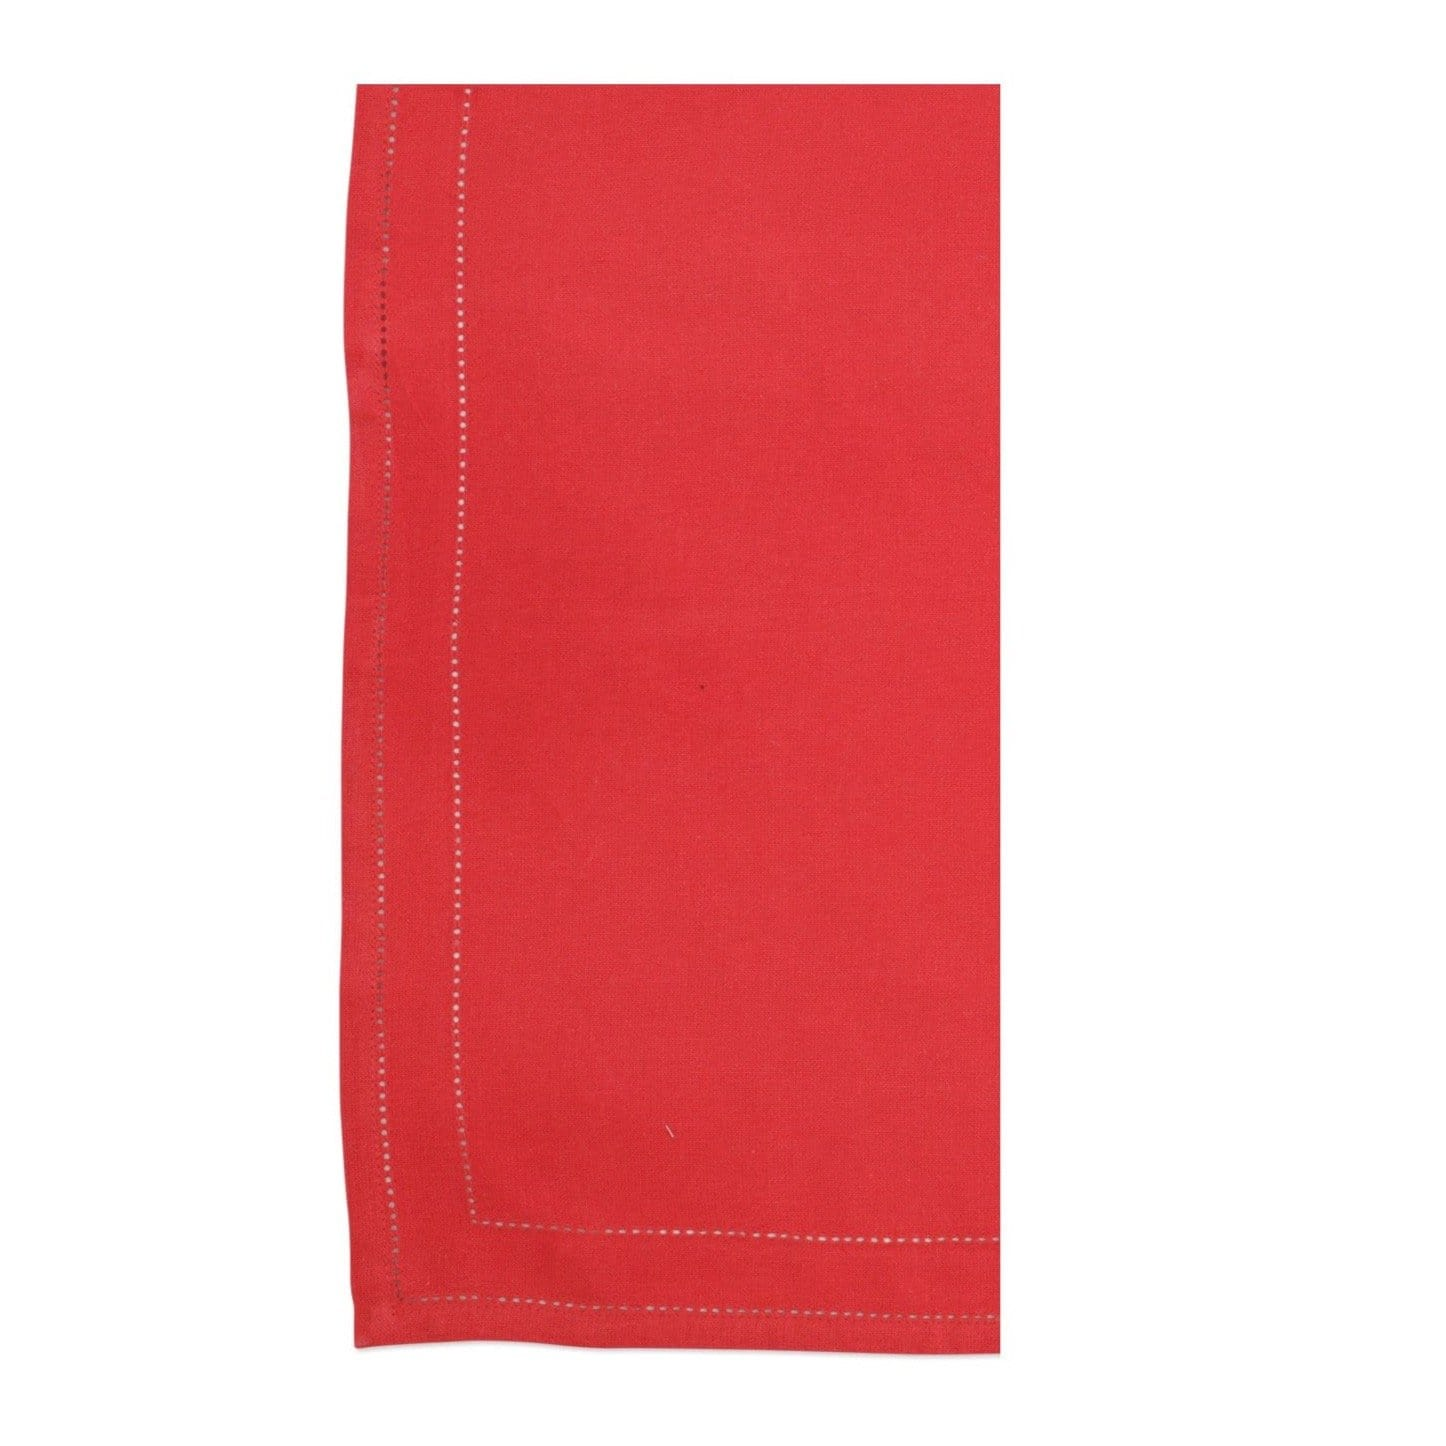 Vietri Cotone Linens Napkins with Double Stitching - Red - Set of 4